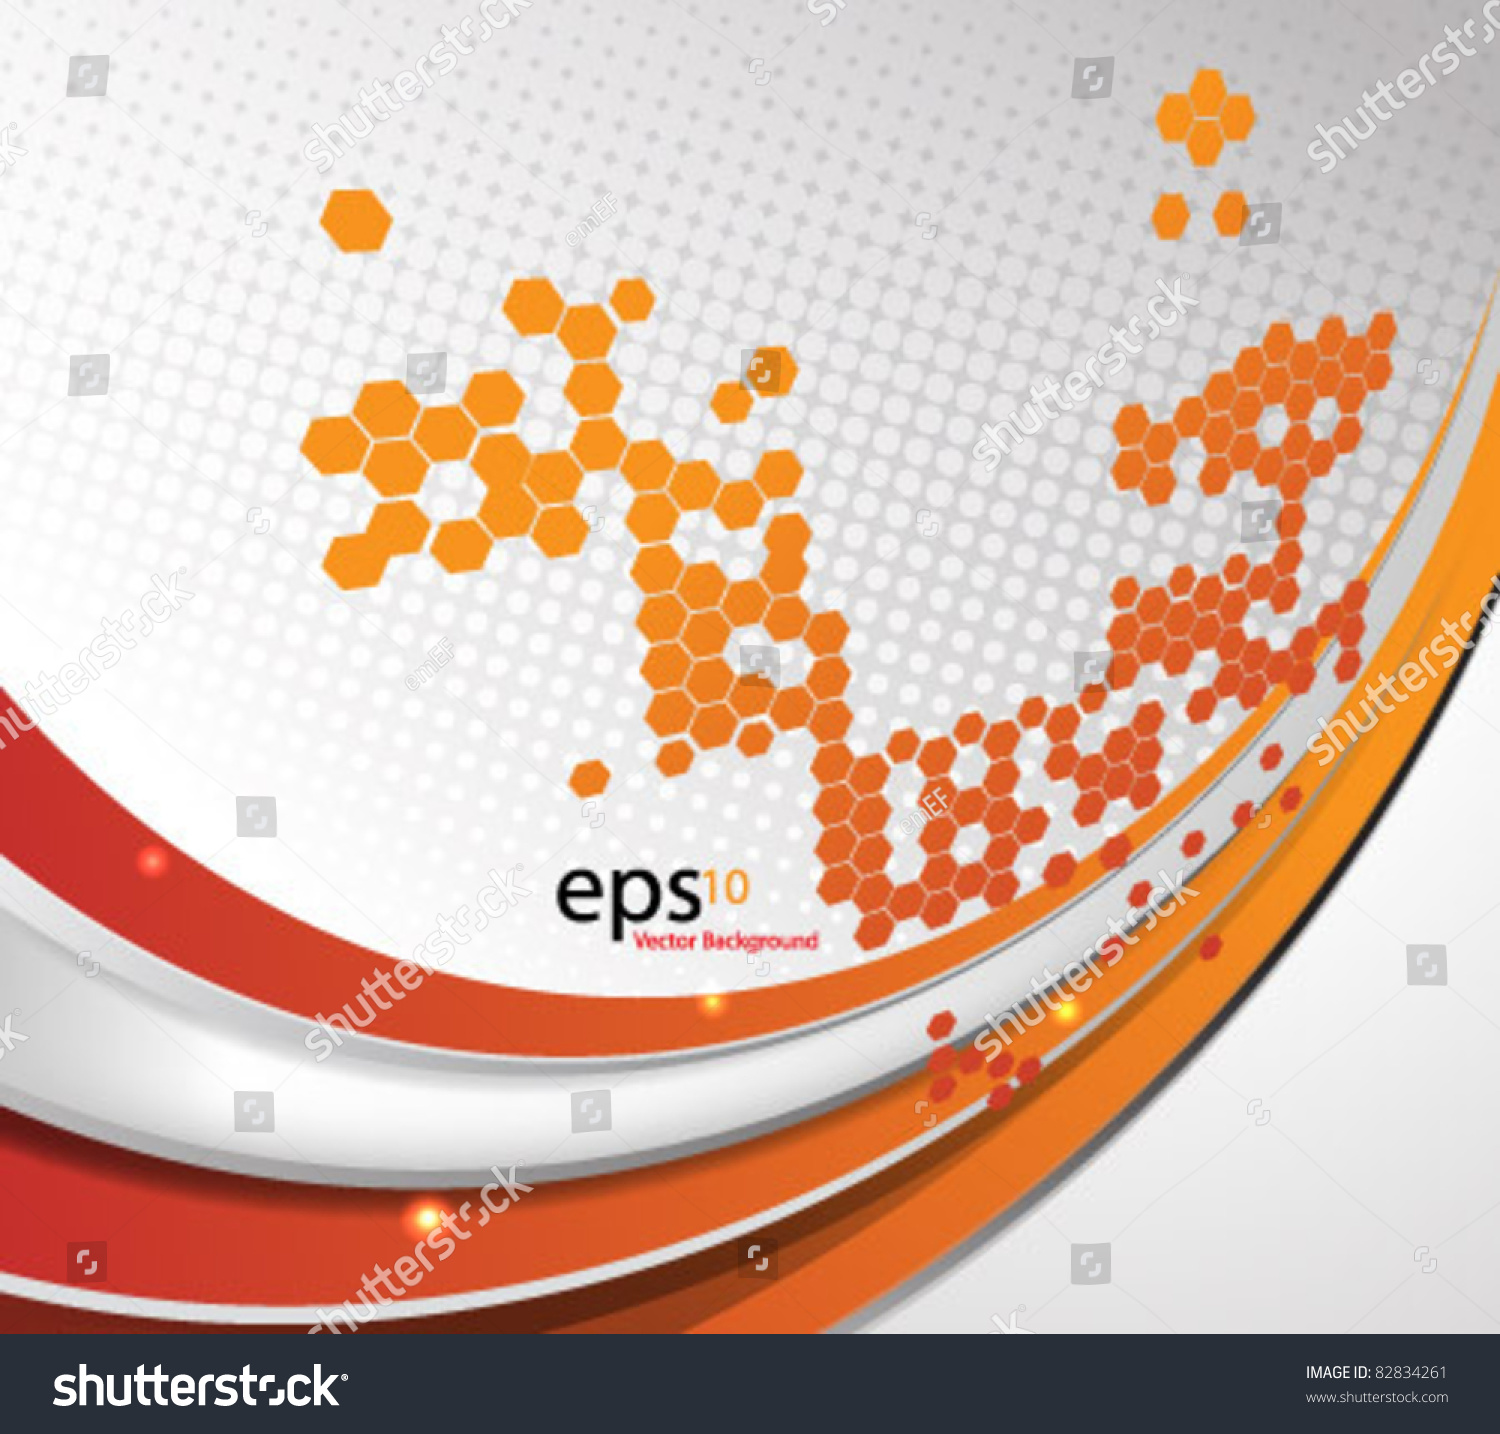 Vector Eps 10 Illustration Background Stock Vector 82834261 ...